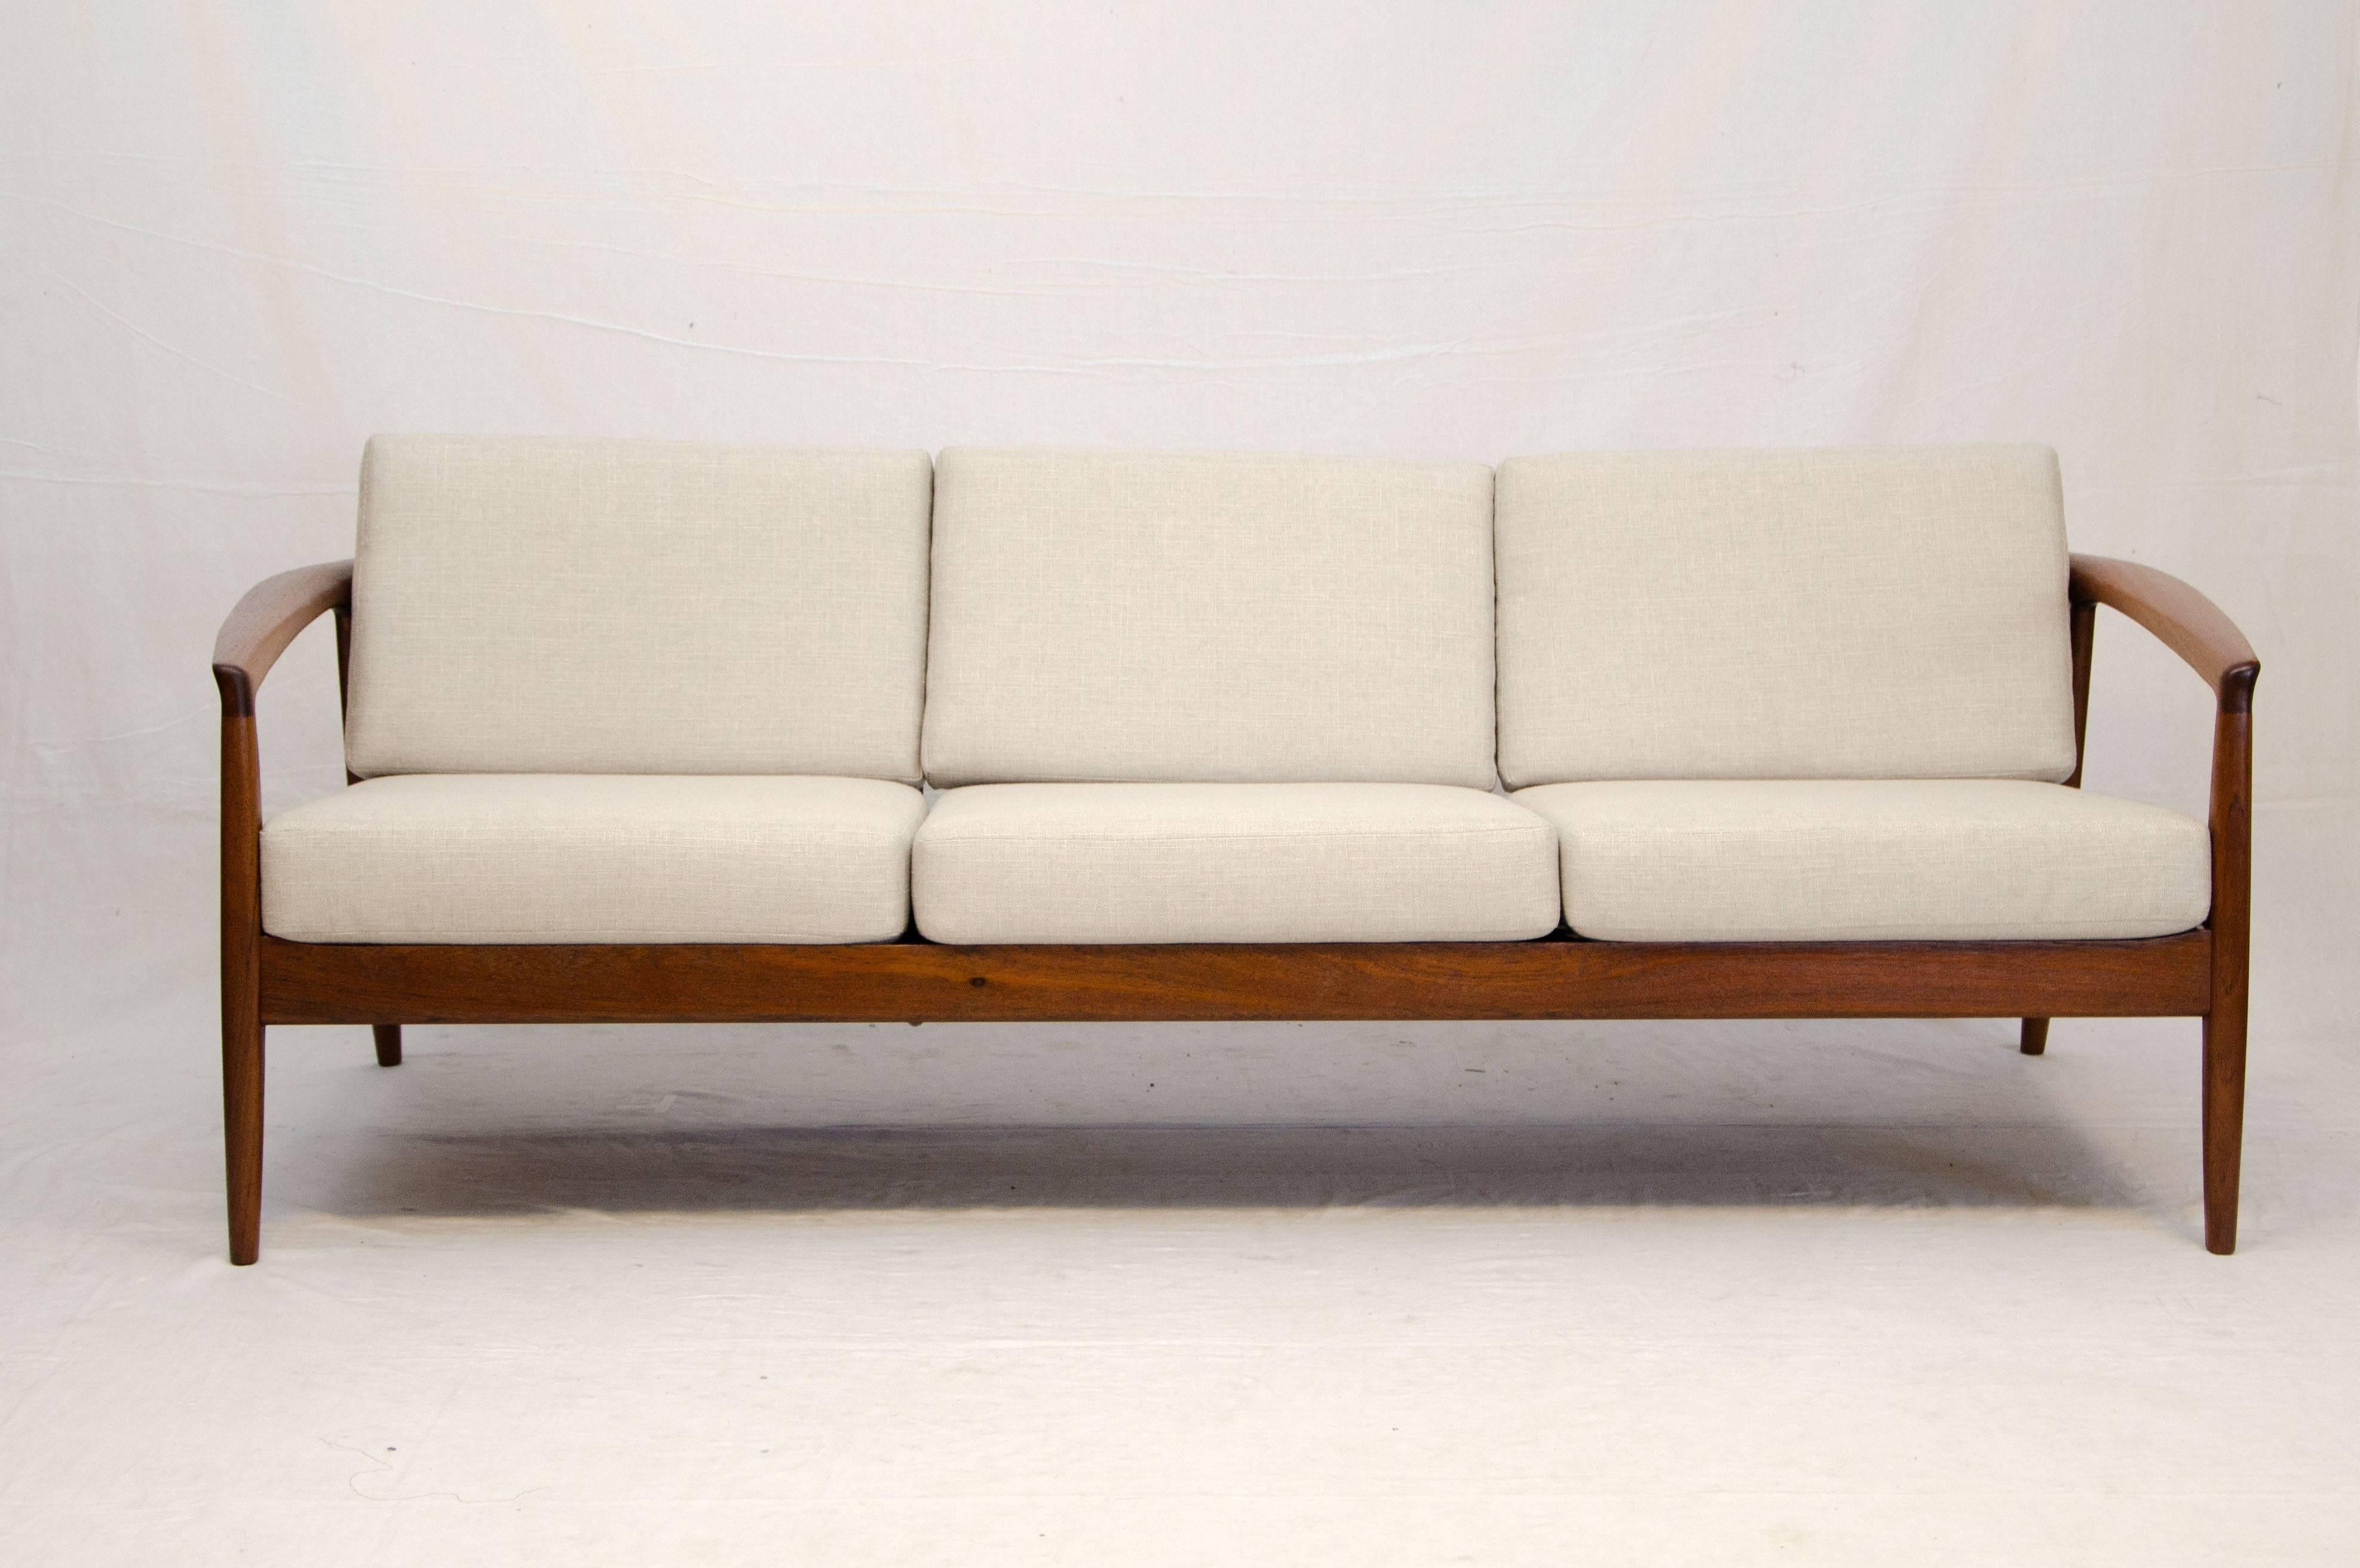 Very Nice Walnut Sofa Frame With A Flowing Rounded Design. The Strapping  Under The Seat